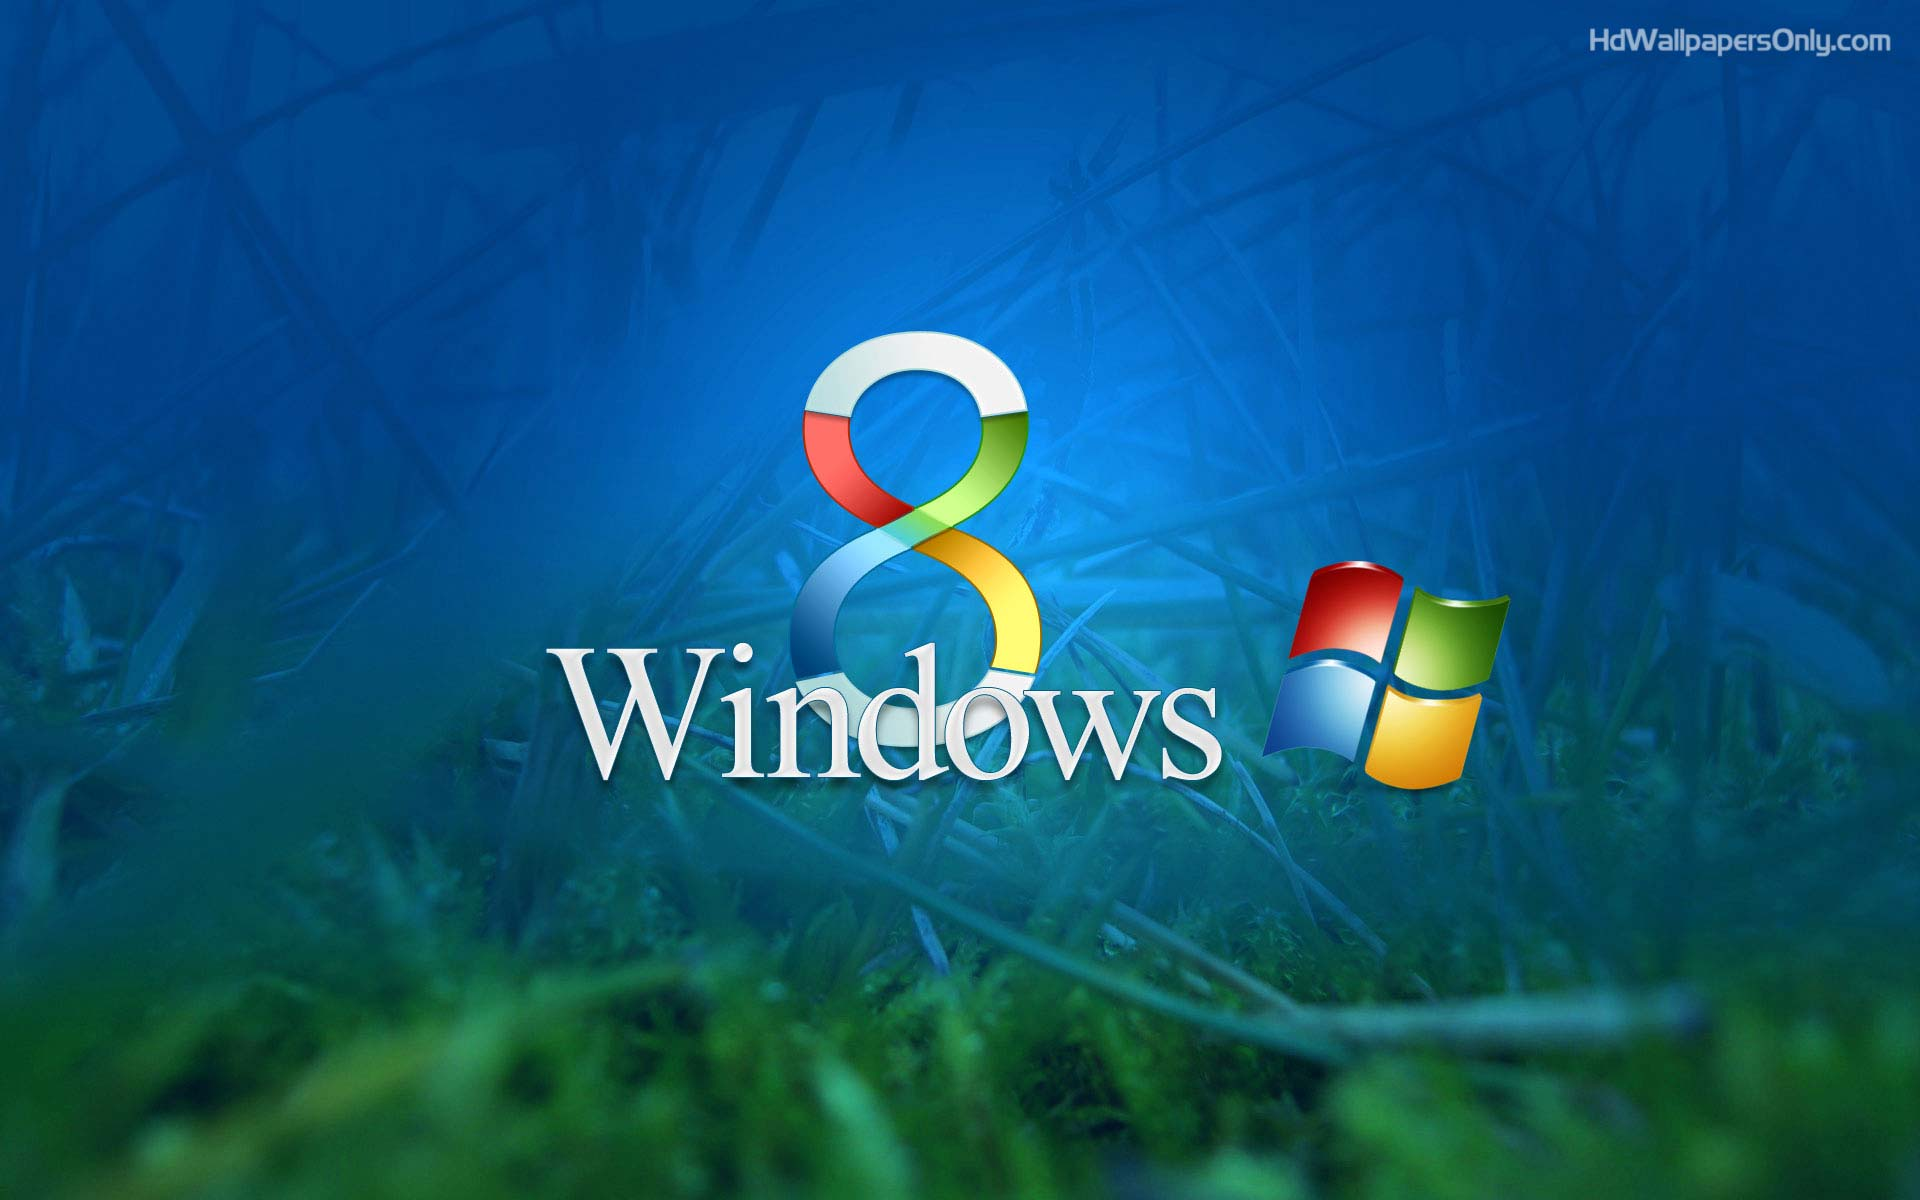 Windows Wallpapers Download Group (78+)